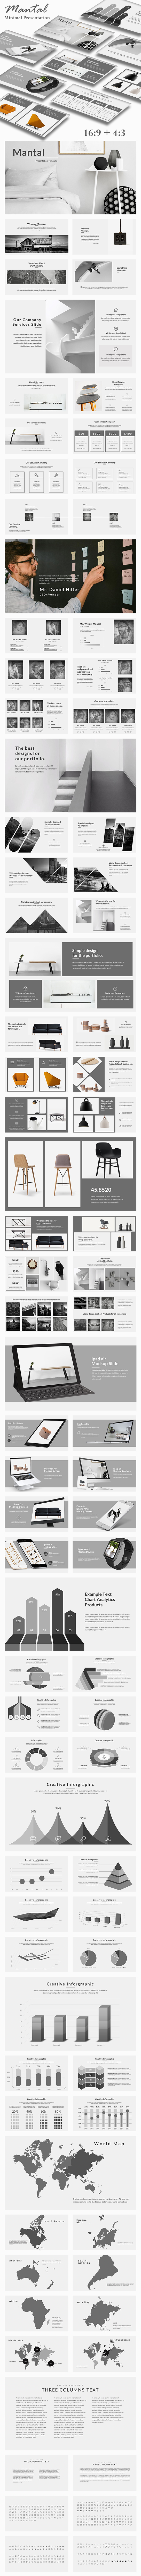 Mantal Minimal Google Slide Template - Google Slides Presentation Templates